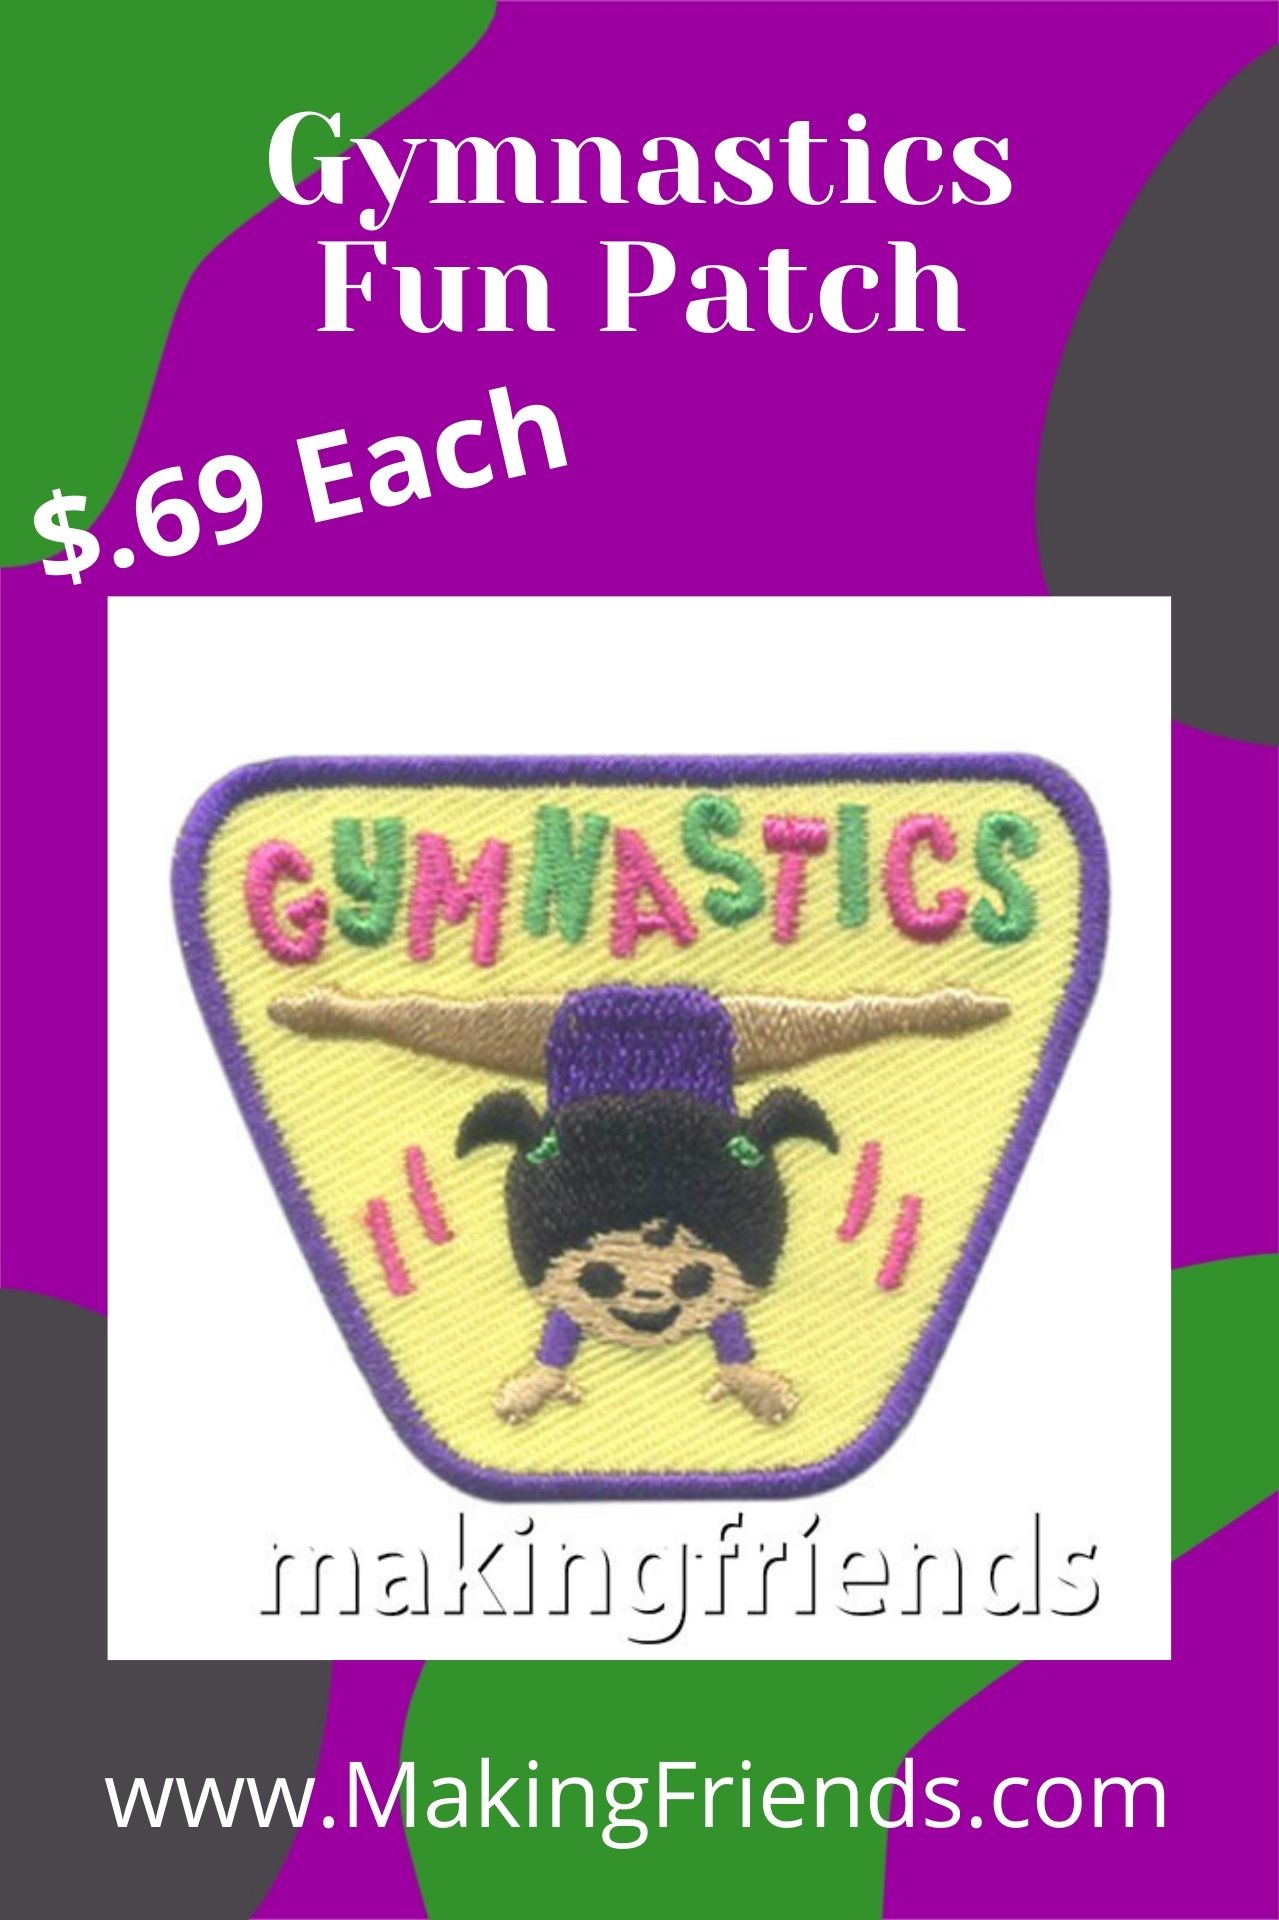 Gymnastics is a fun way to stay healthy! Add this patch to your program for girls to show off! $.69 each, free shipping available! #makingfriends #gymnastics #sports #excercise #behealthy #girlscouts #girlscoutsfunpatch #funpatch via @gsleader411